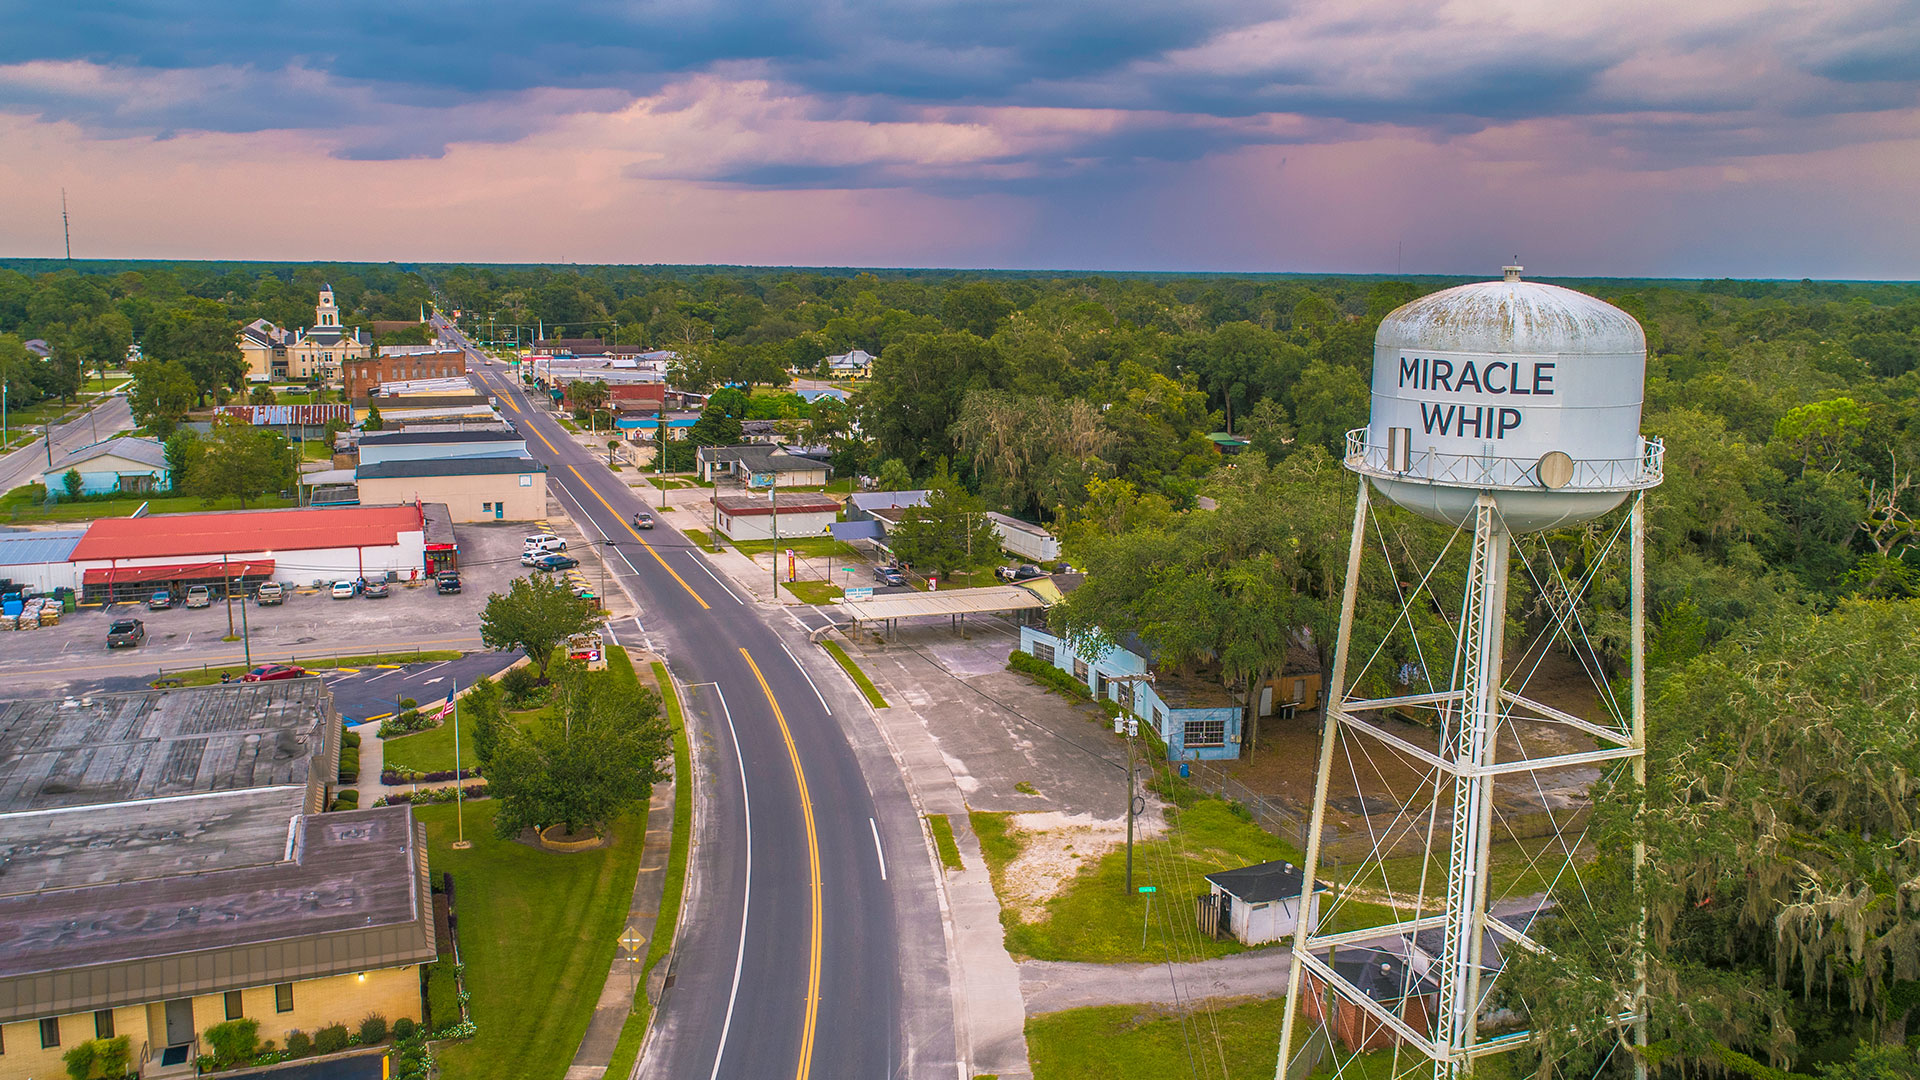 Mayo Florida Miracle Whip Water Tower